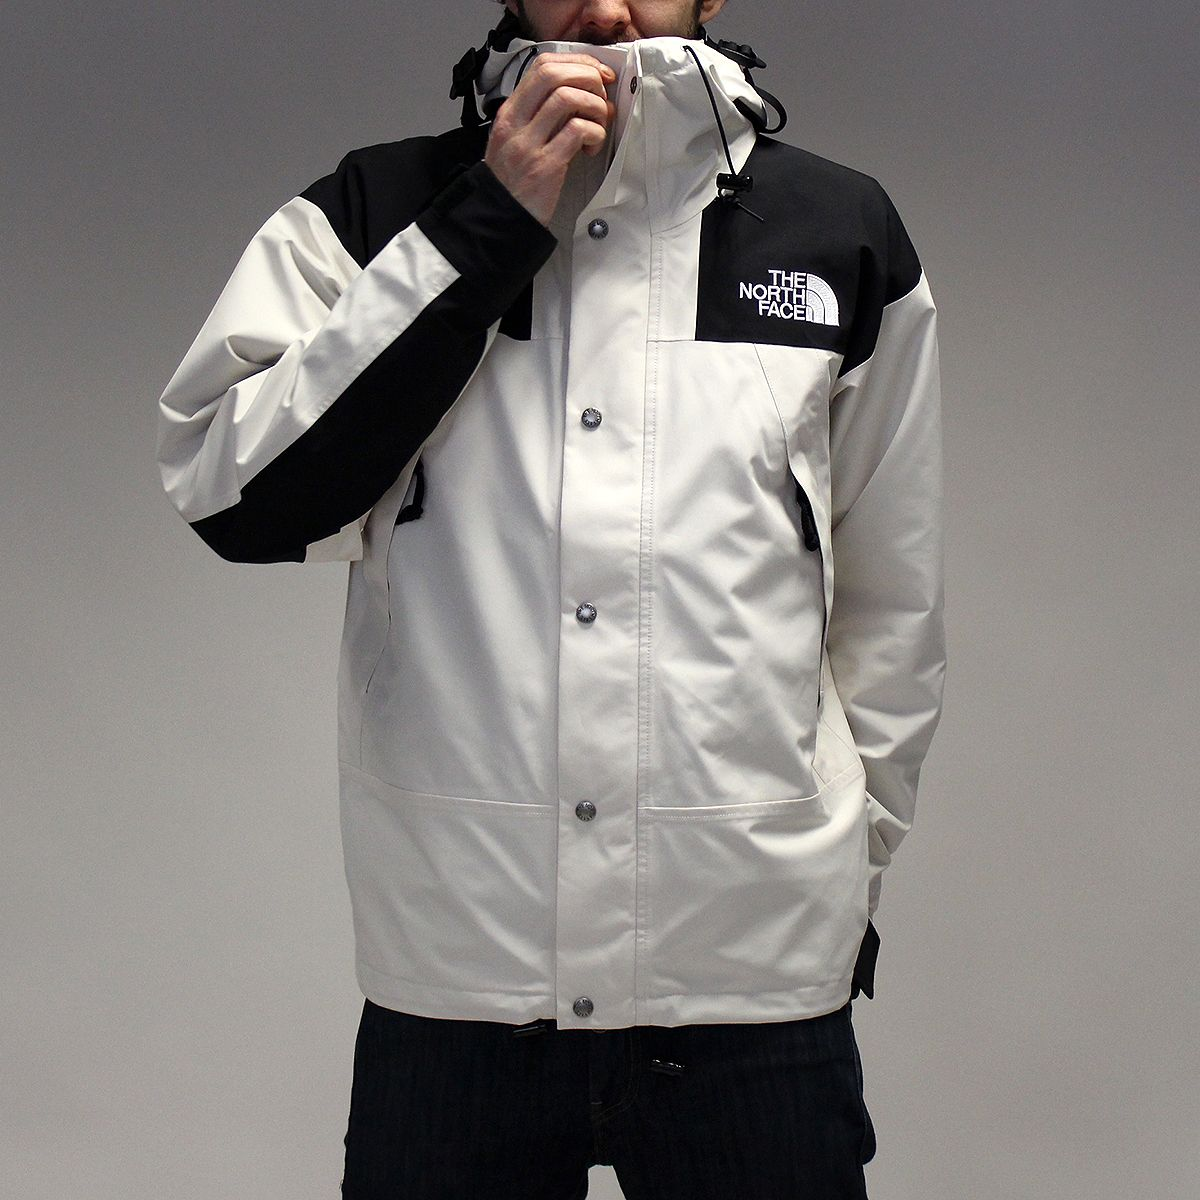 81bff9f16 THE NORTH FACE 1990 MOUNTAIN GTX JACKET – VINTAGE WHITE | COLOR ...